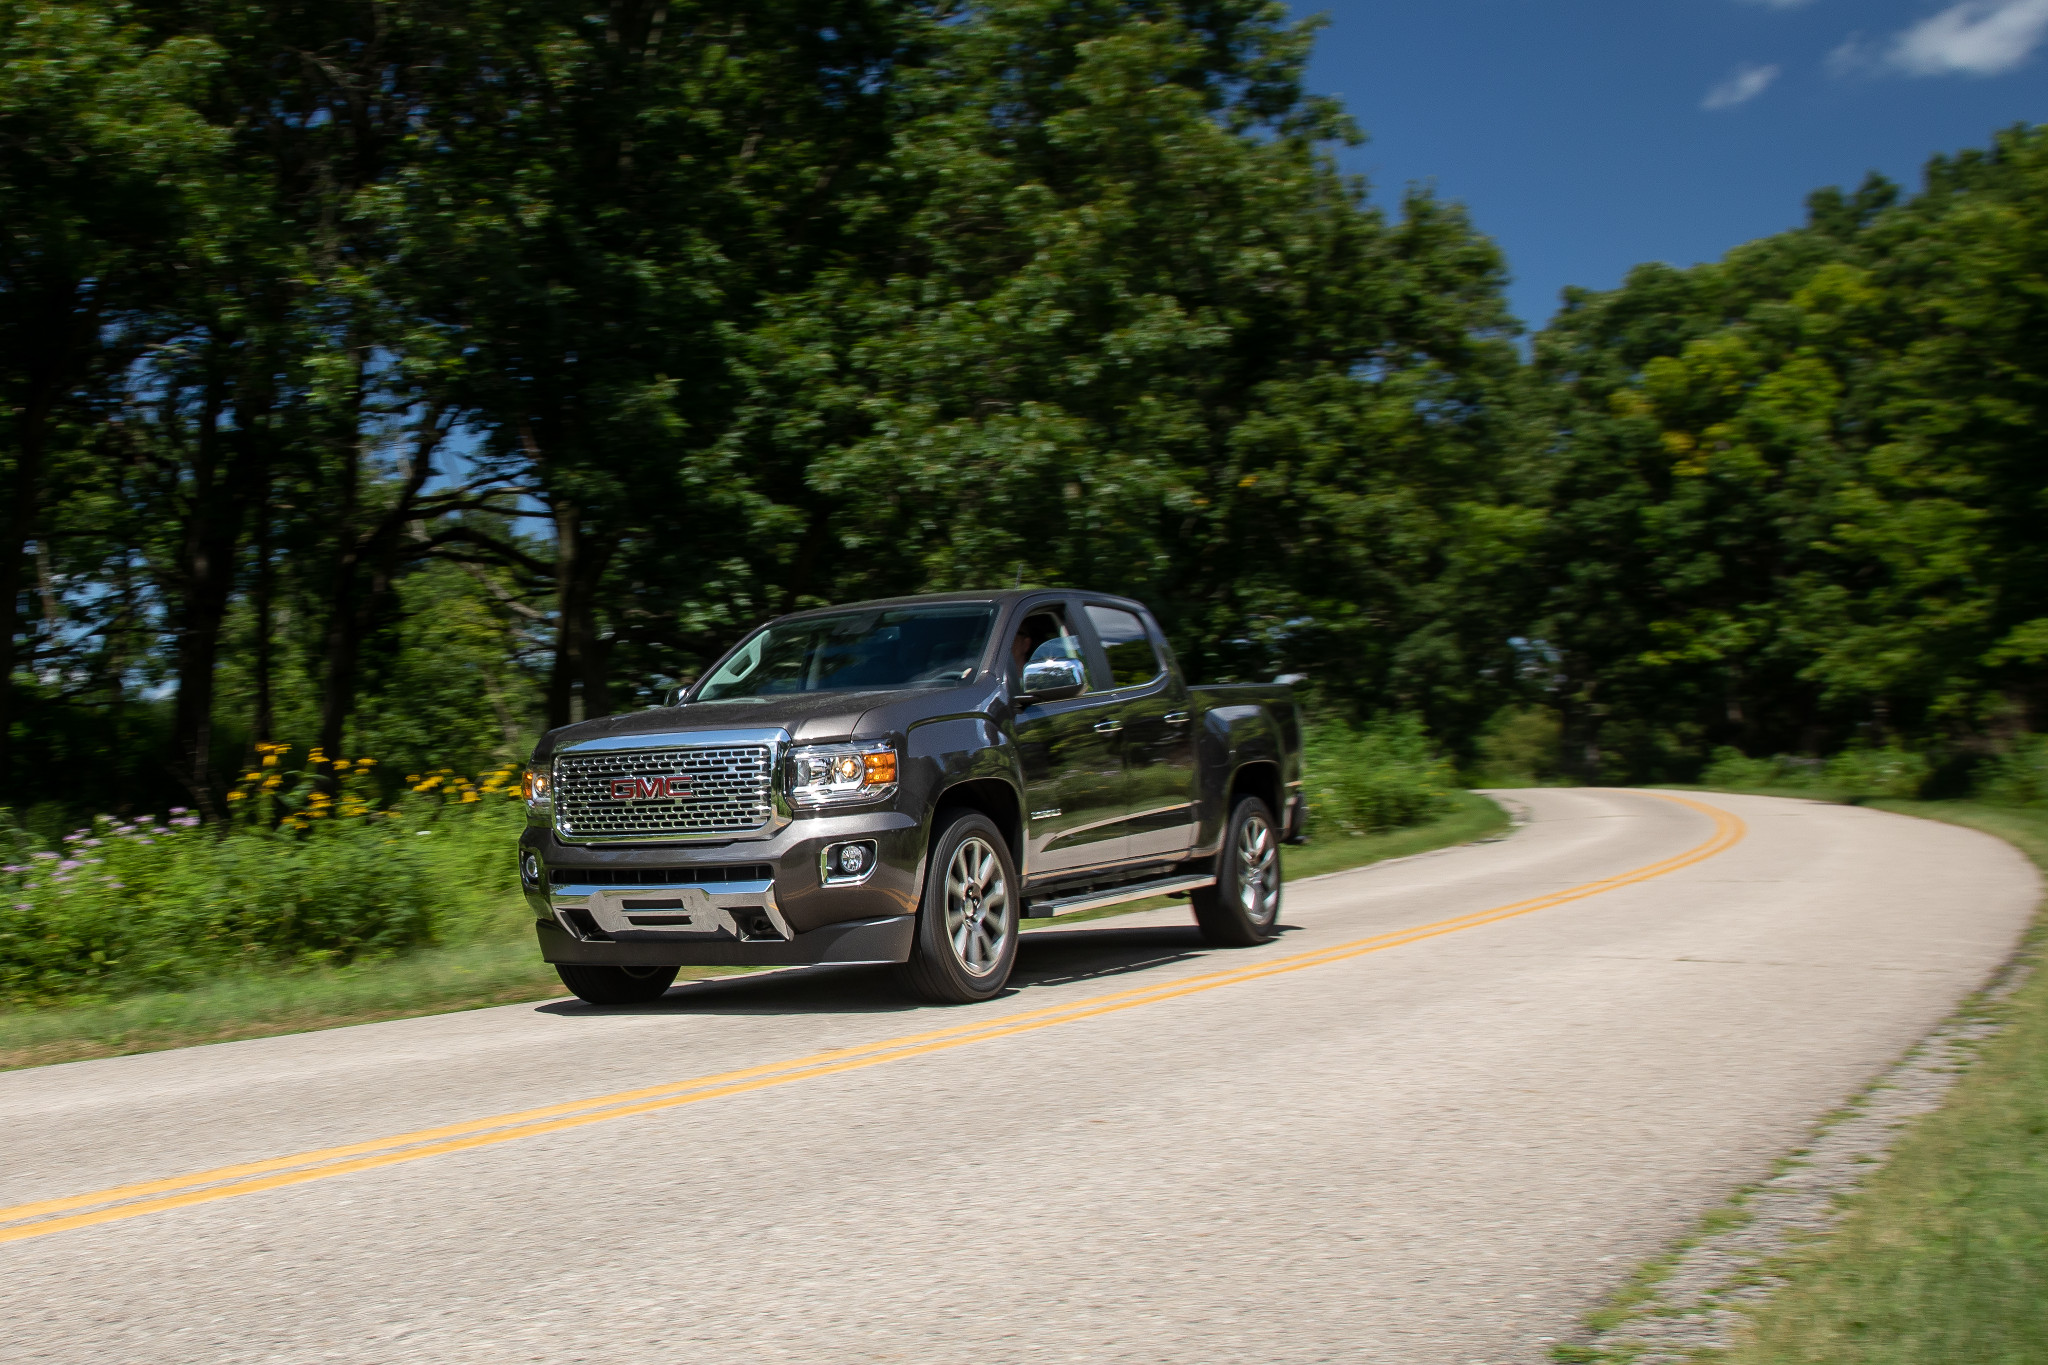 2019 GMC Canyon Review: Outclassed by Its Competitors